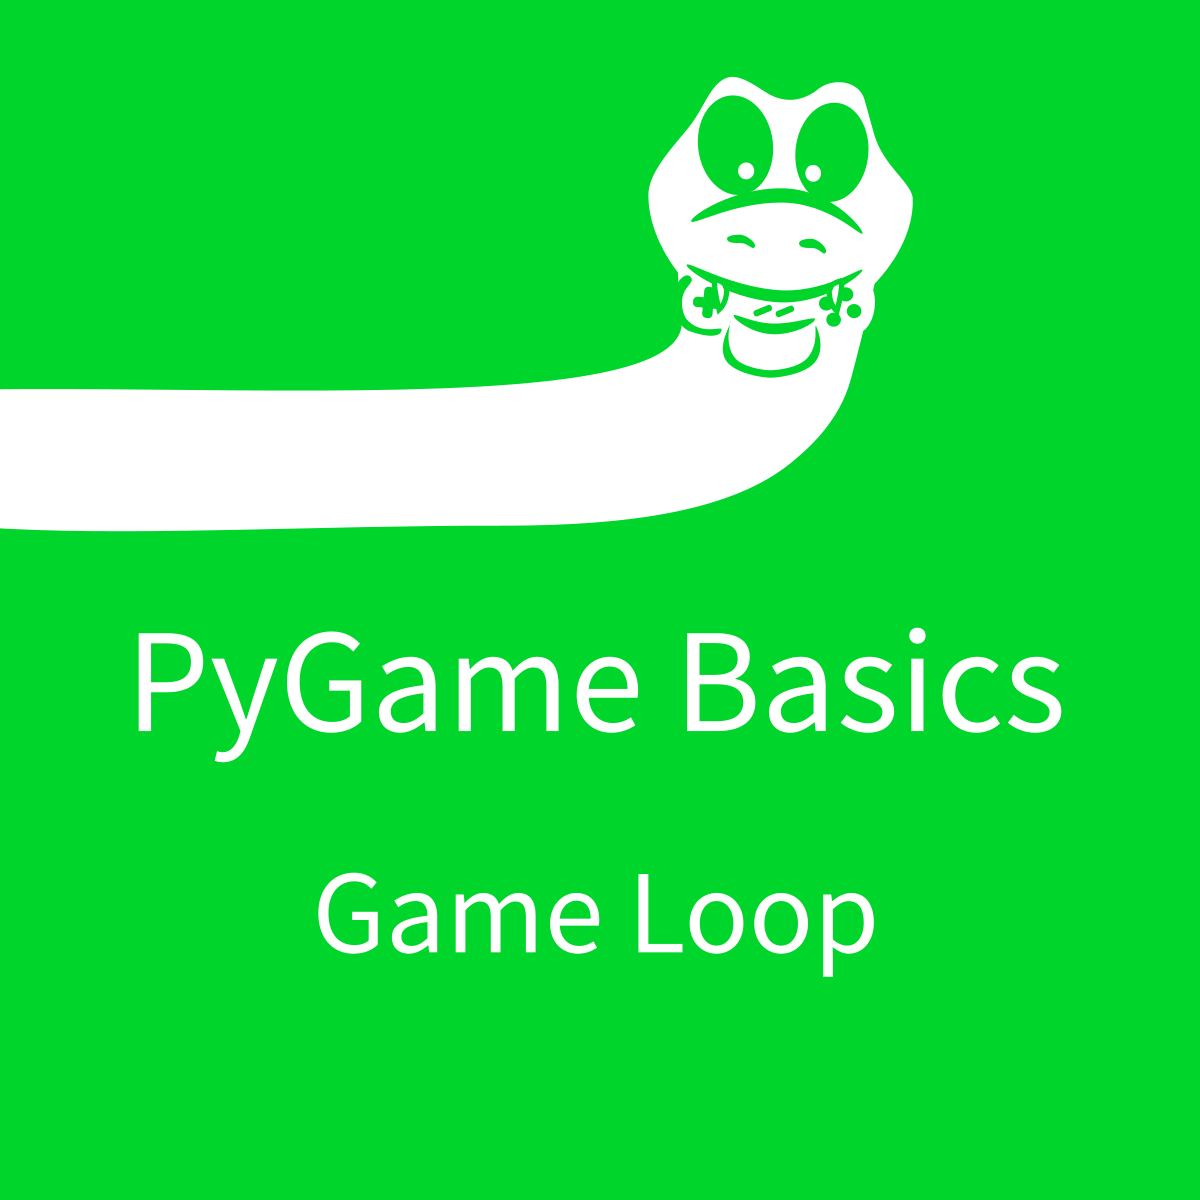 PyGame Basics: Game Loop